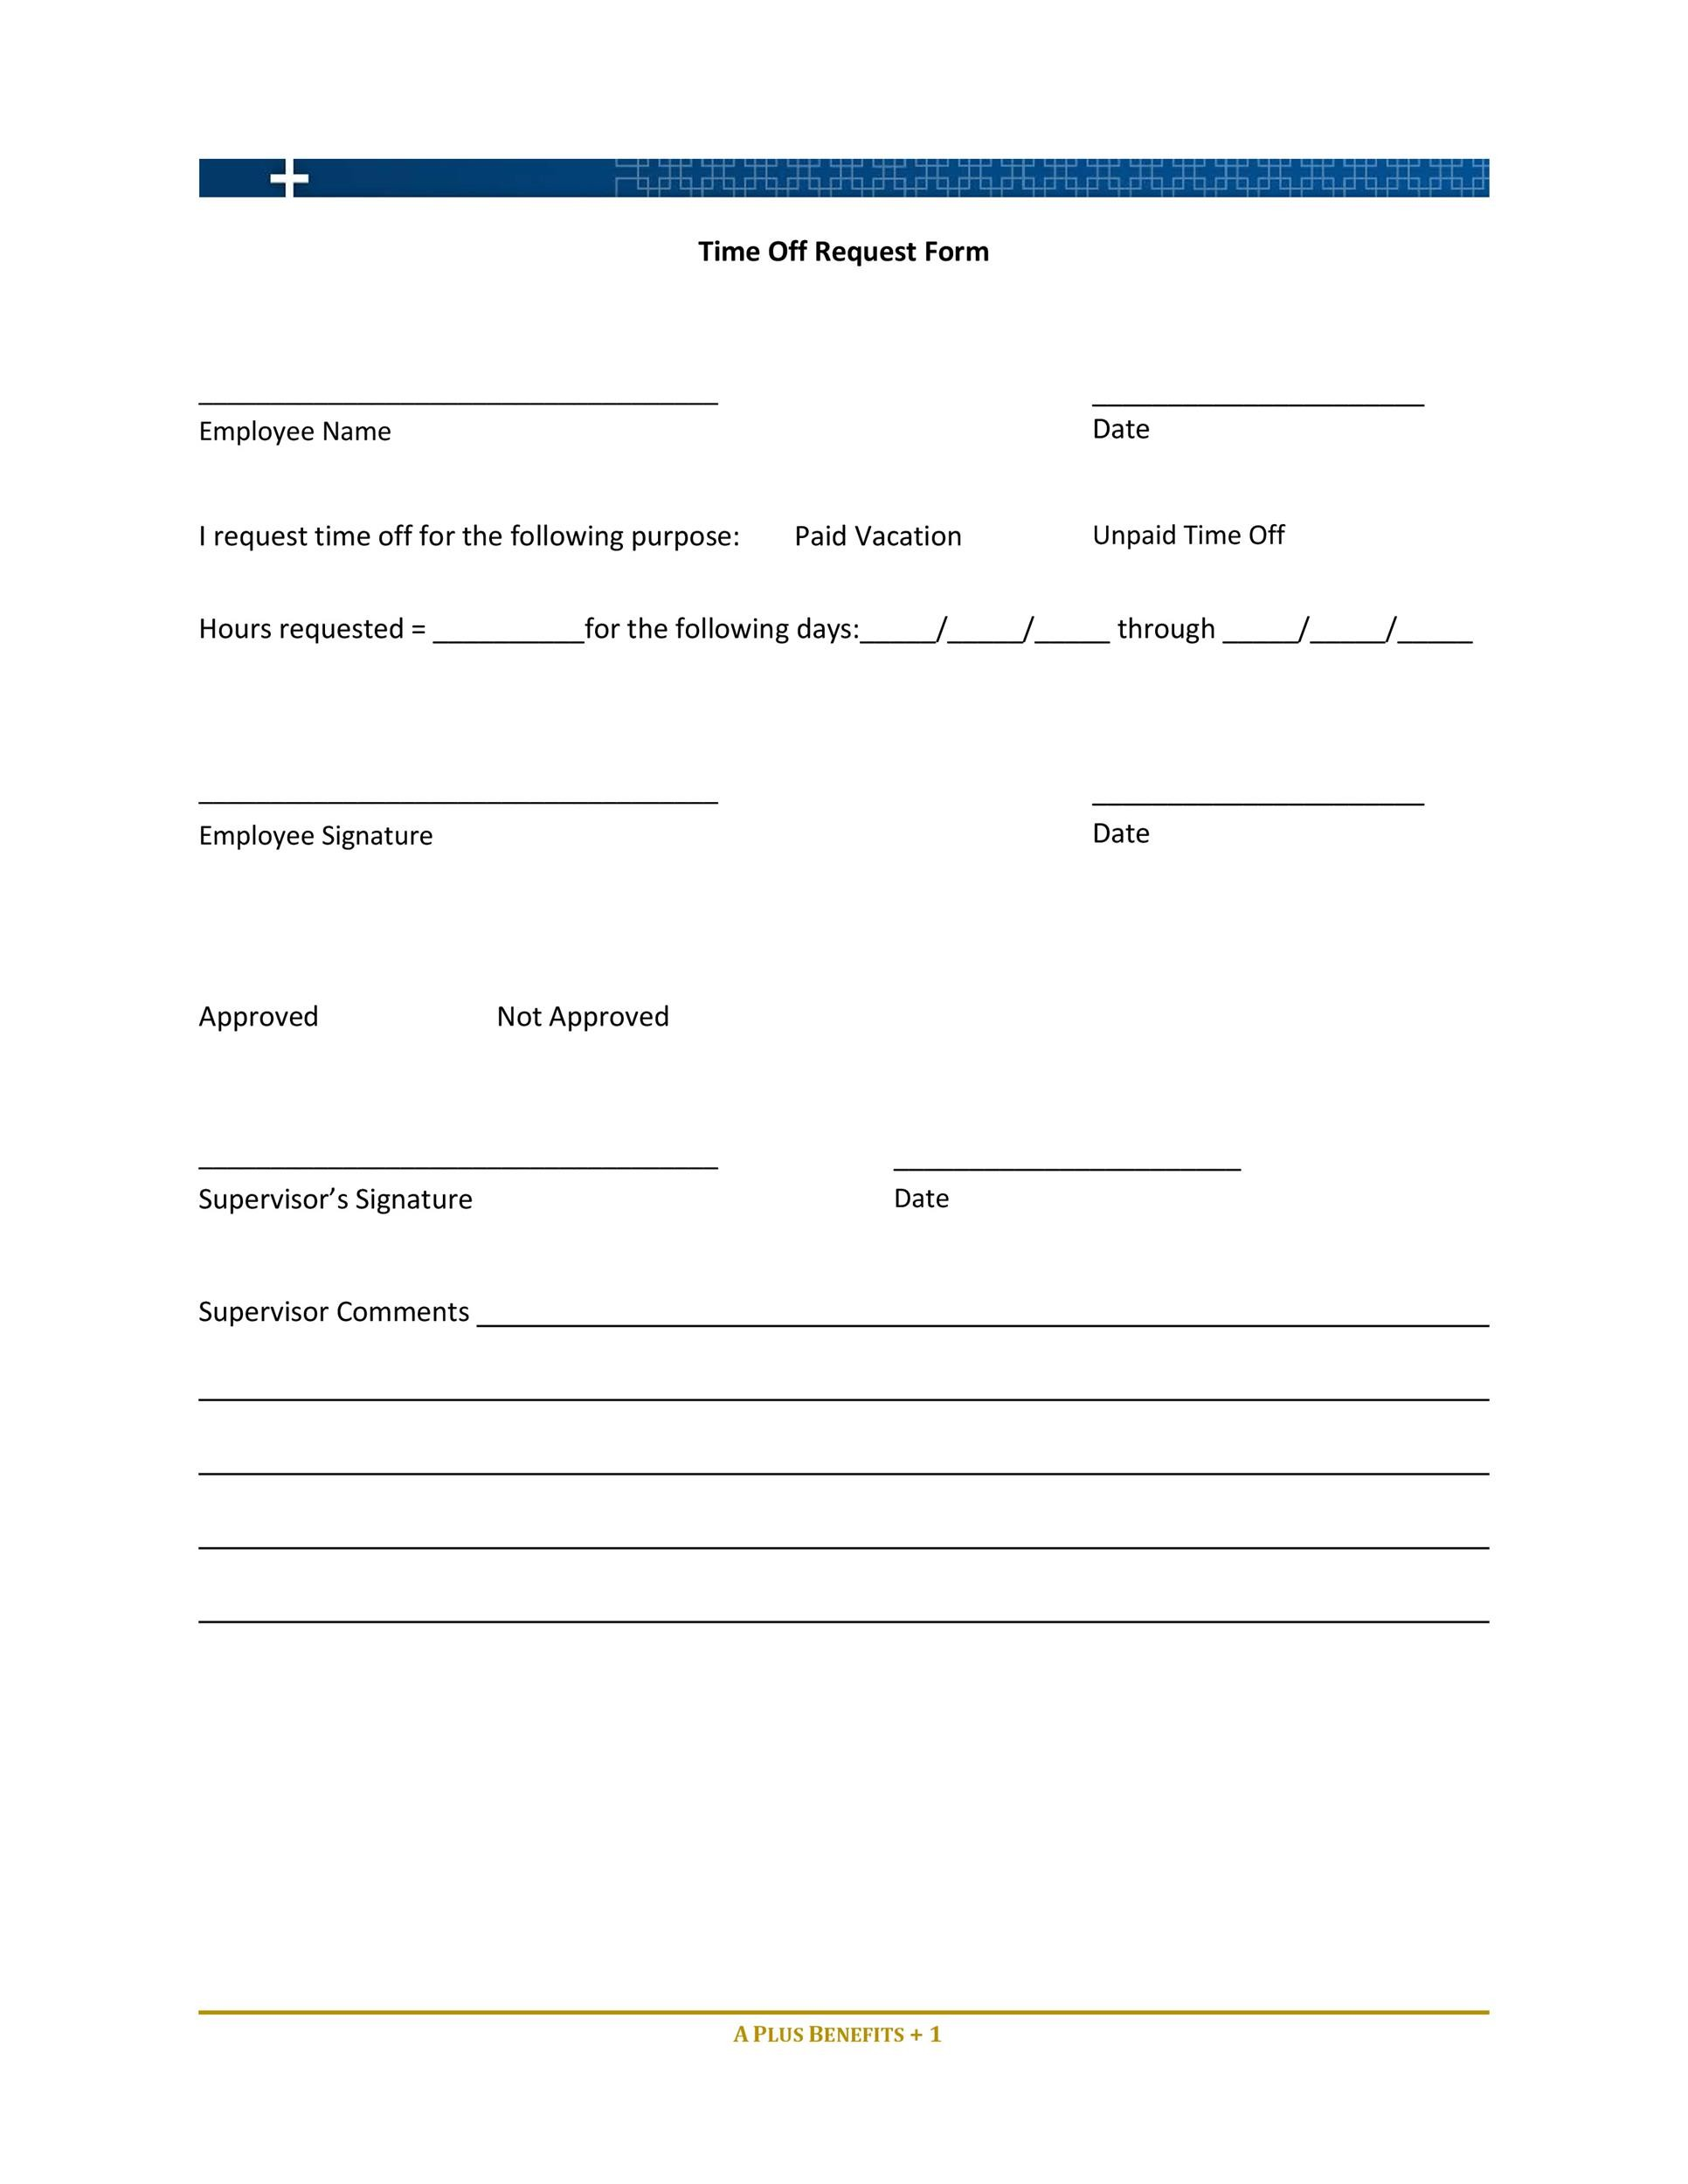 Employment verification request form template resume – Employment Verification Request Form Template